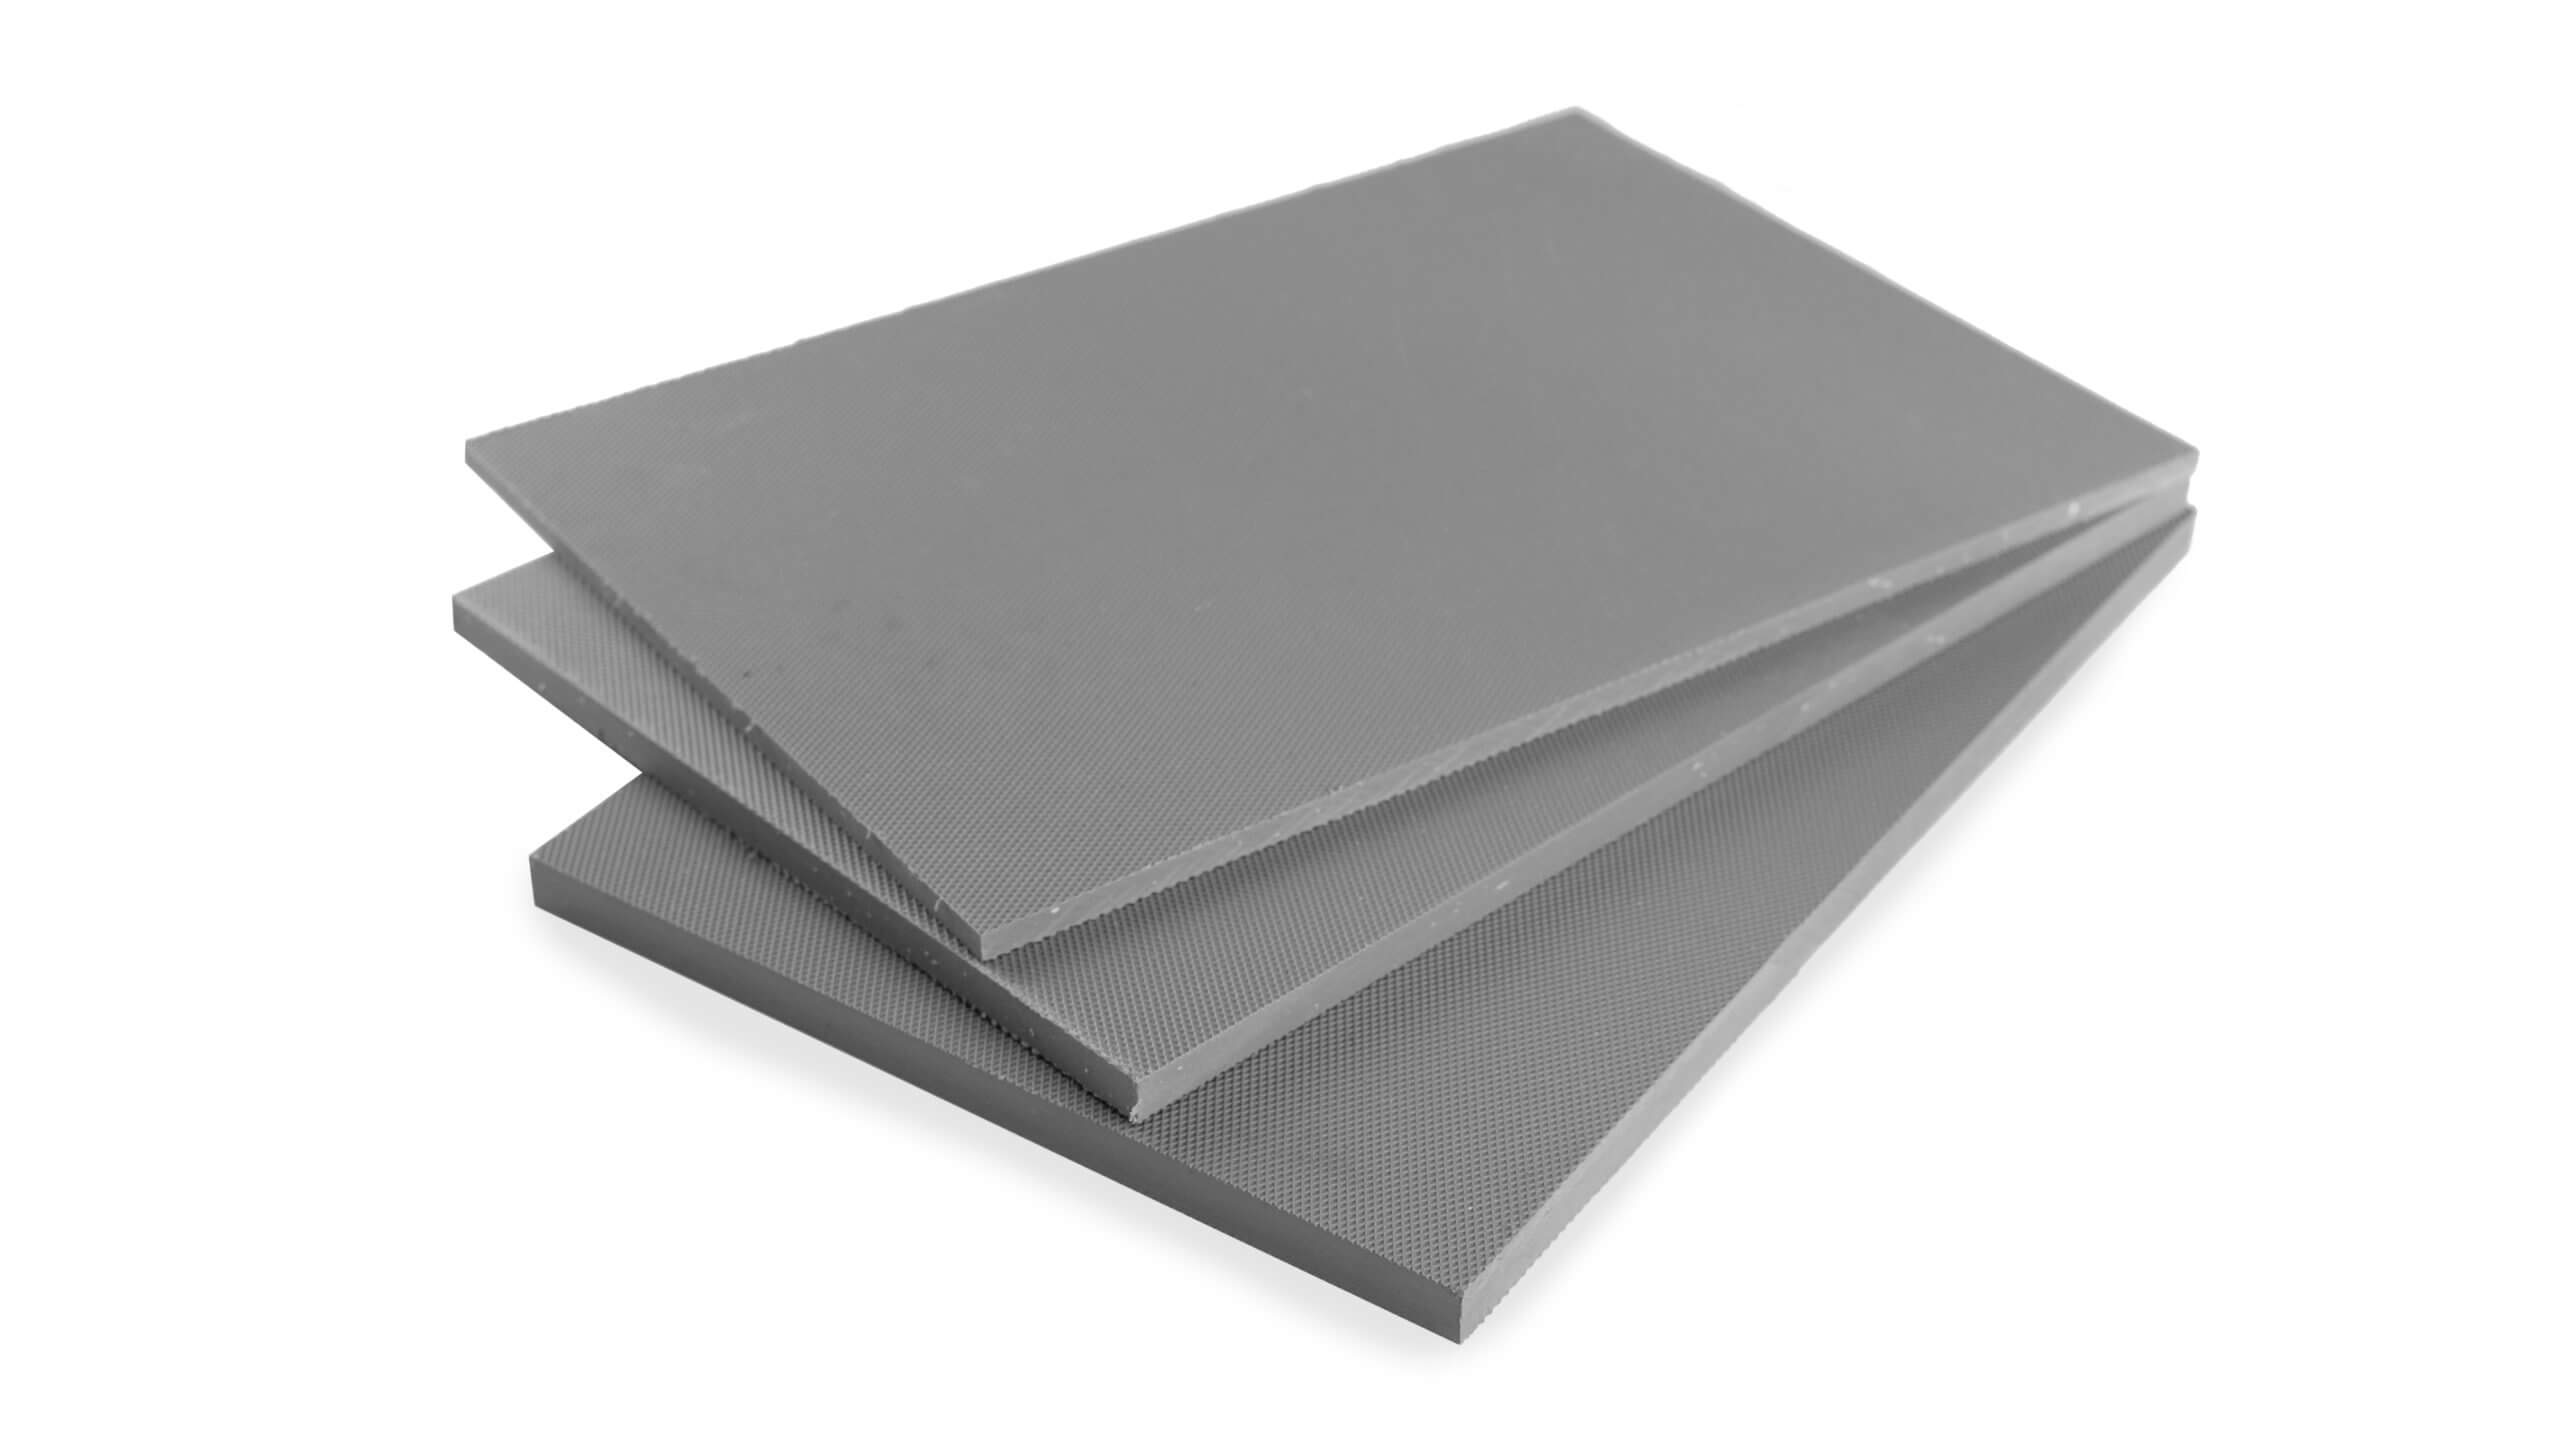 stokbord sheet in grey thicknesses